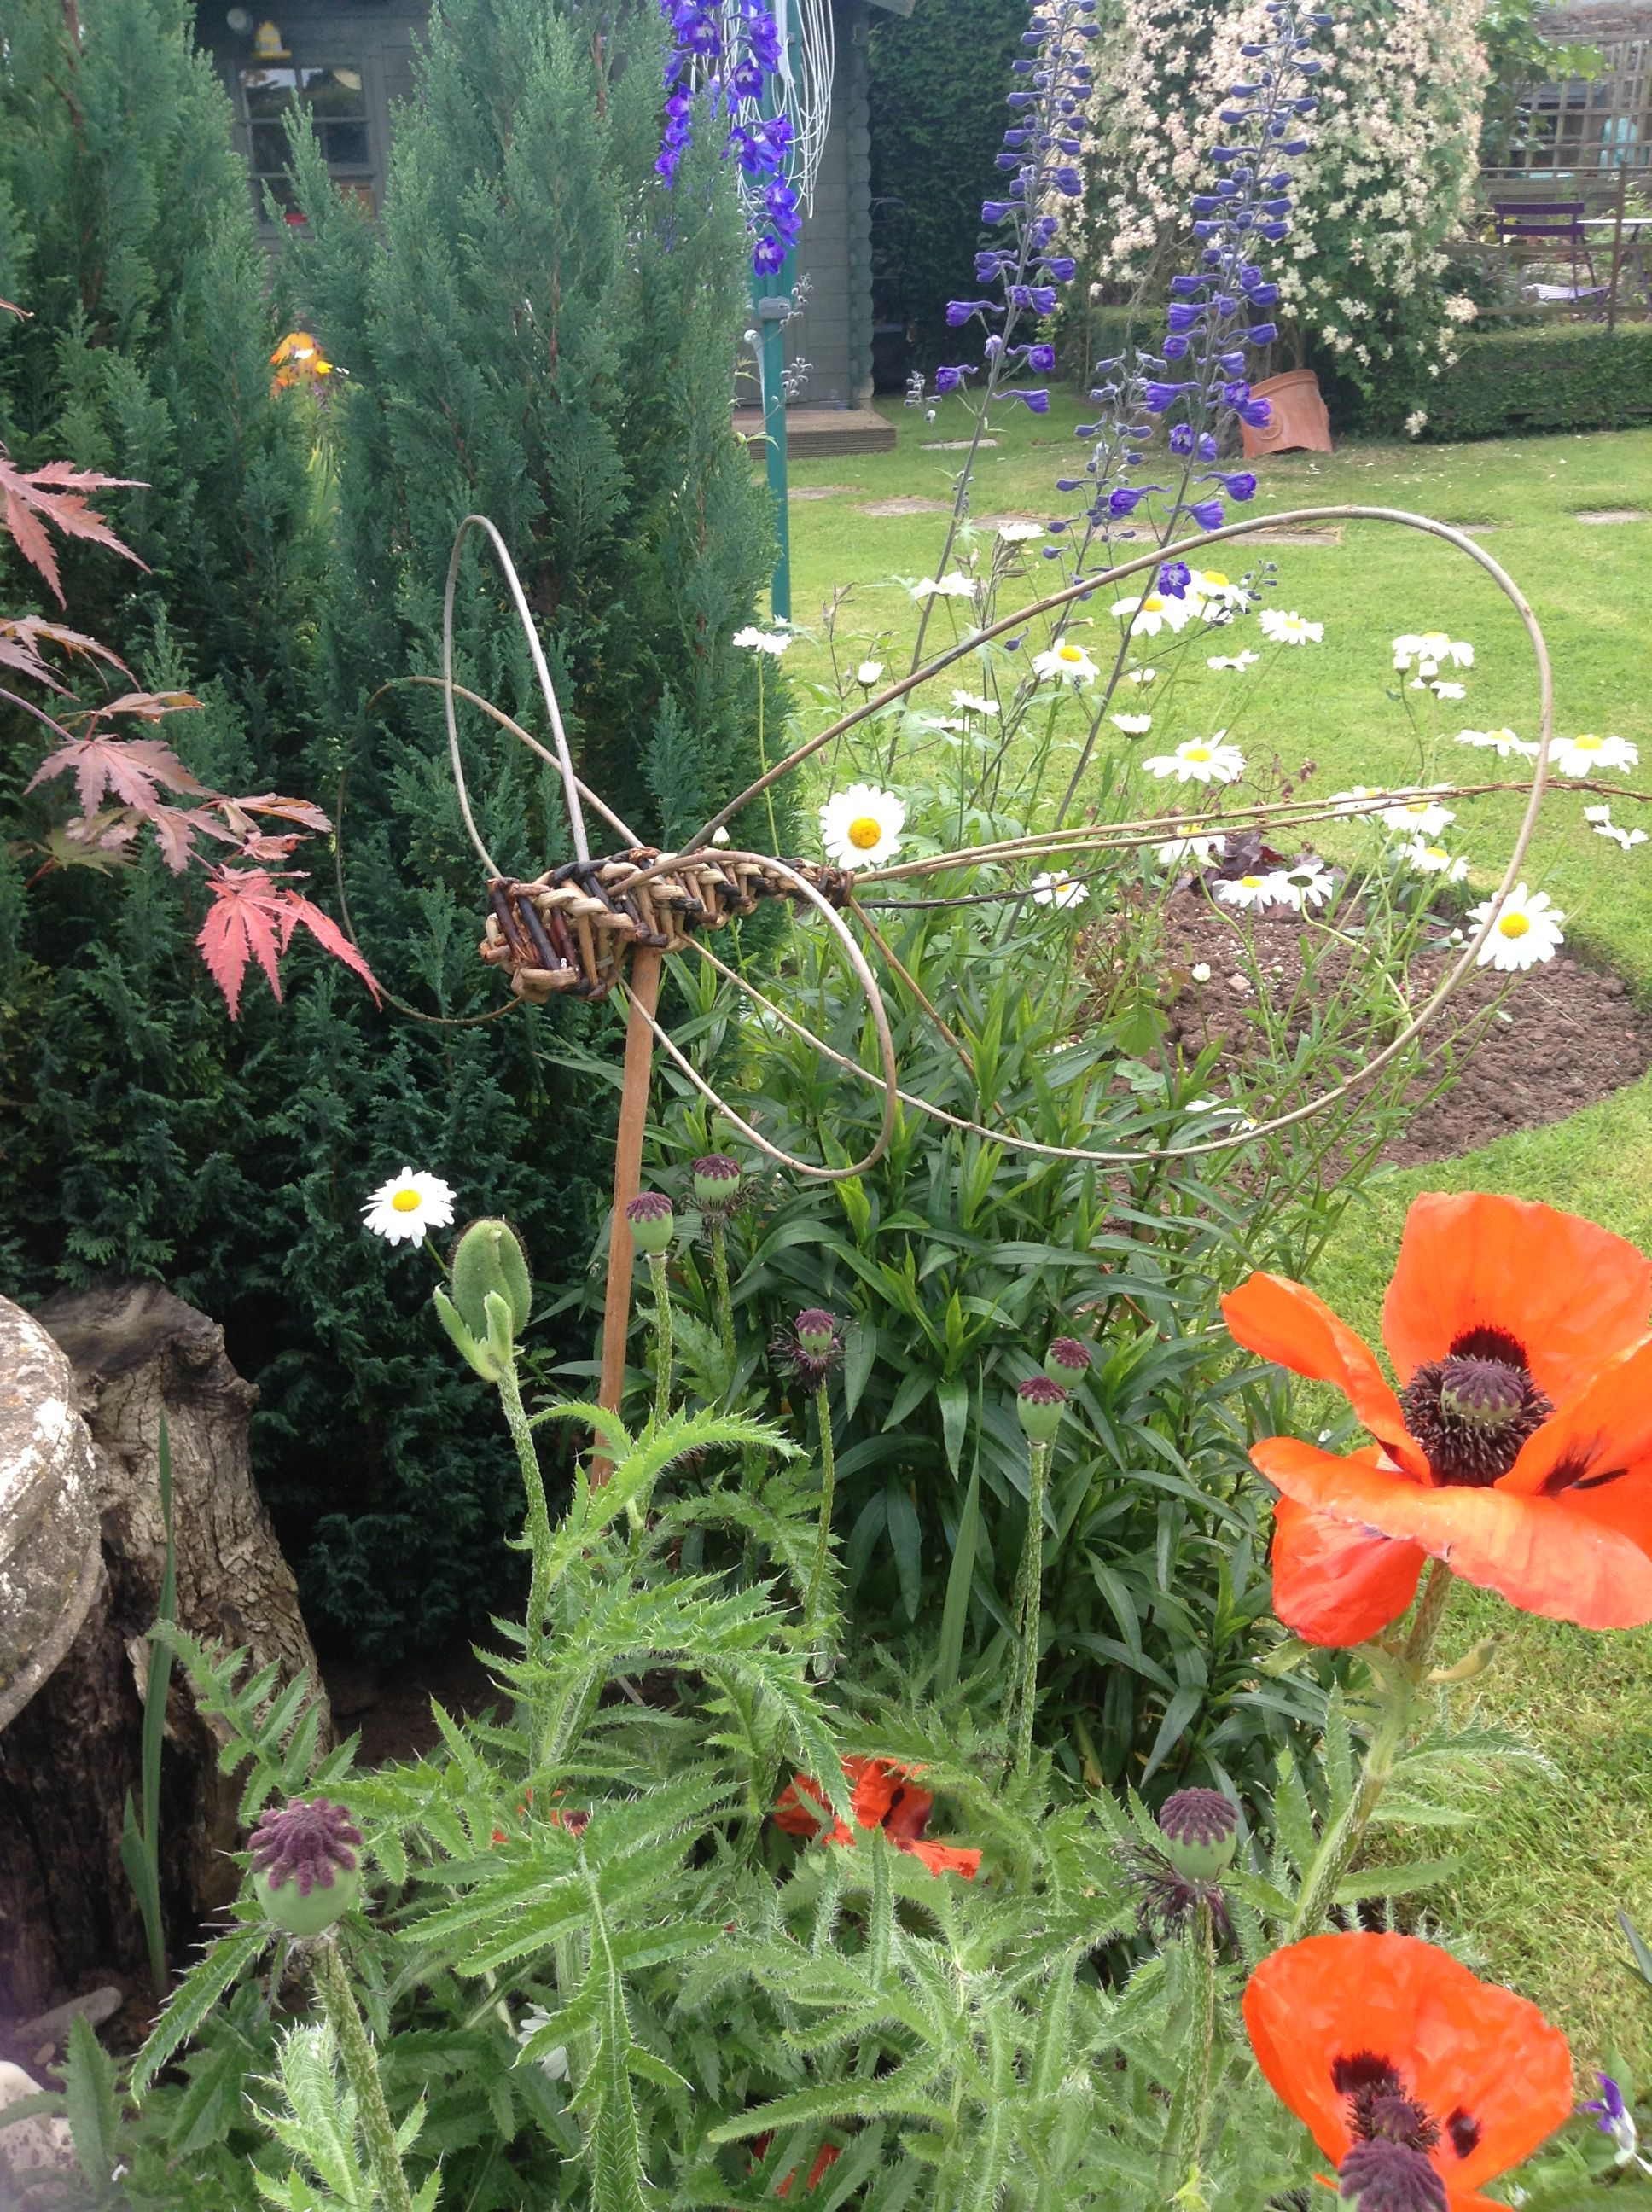 Tressage Osier Jardin Willow Dragonfly Vannerie Garden Projects To Try Et